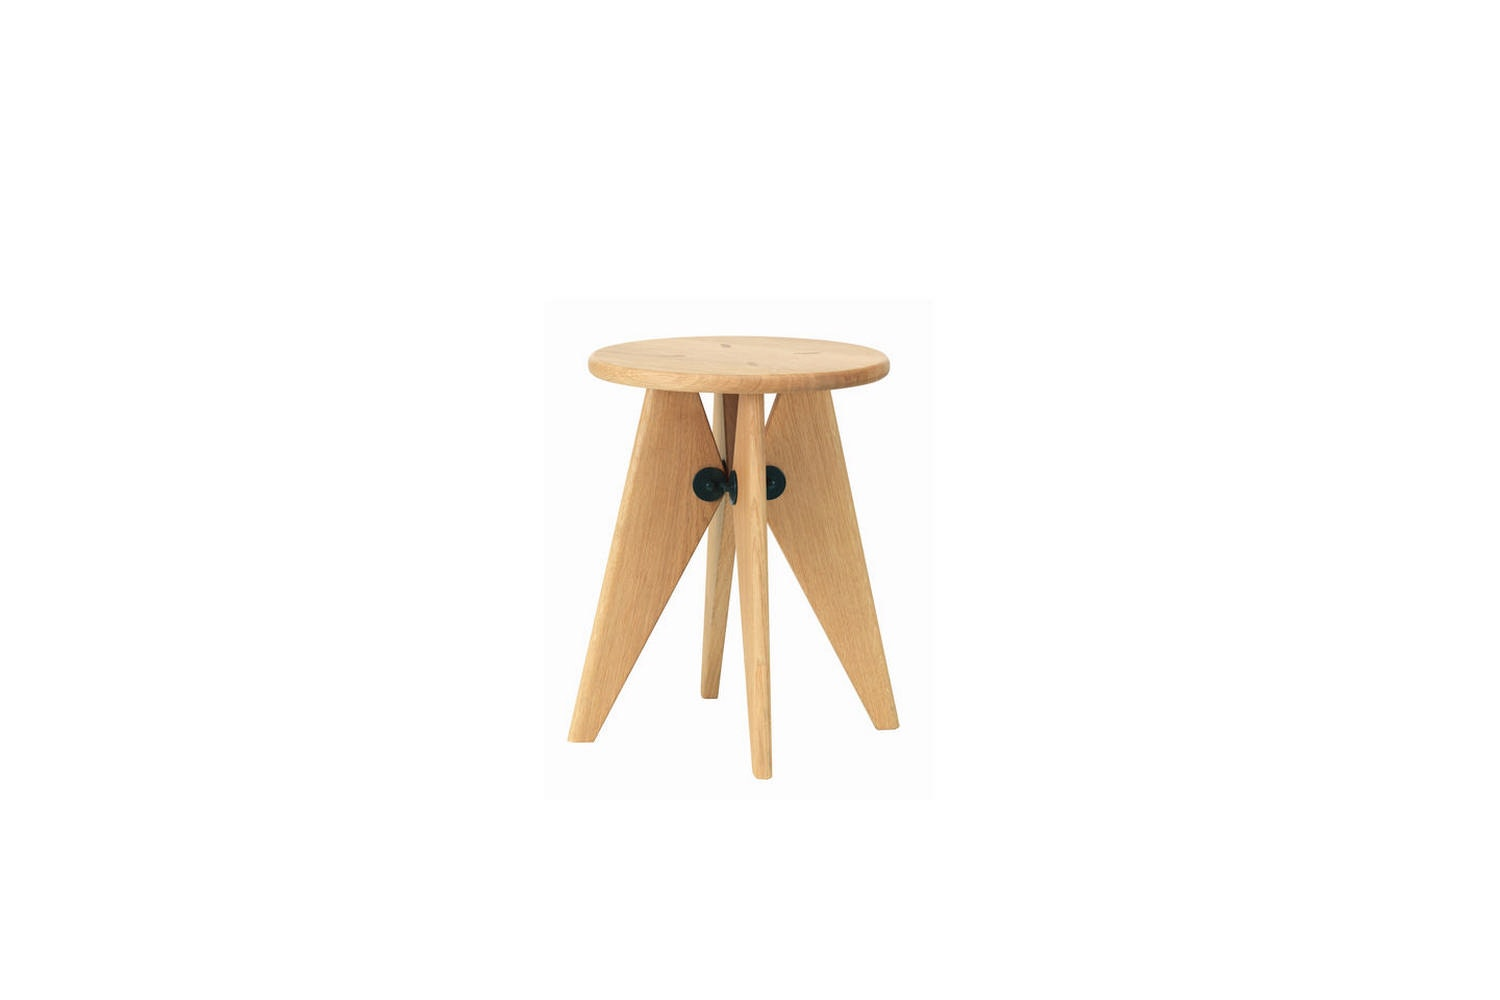 Tabouret Solvay Stool by Jean Prouve for Vitra